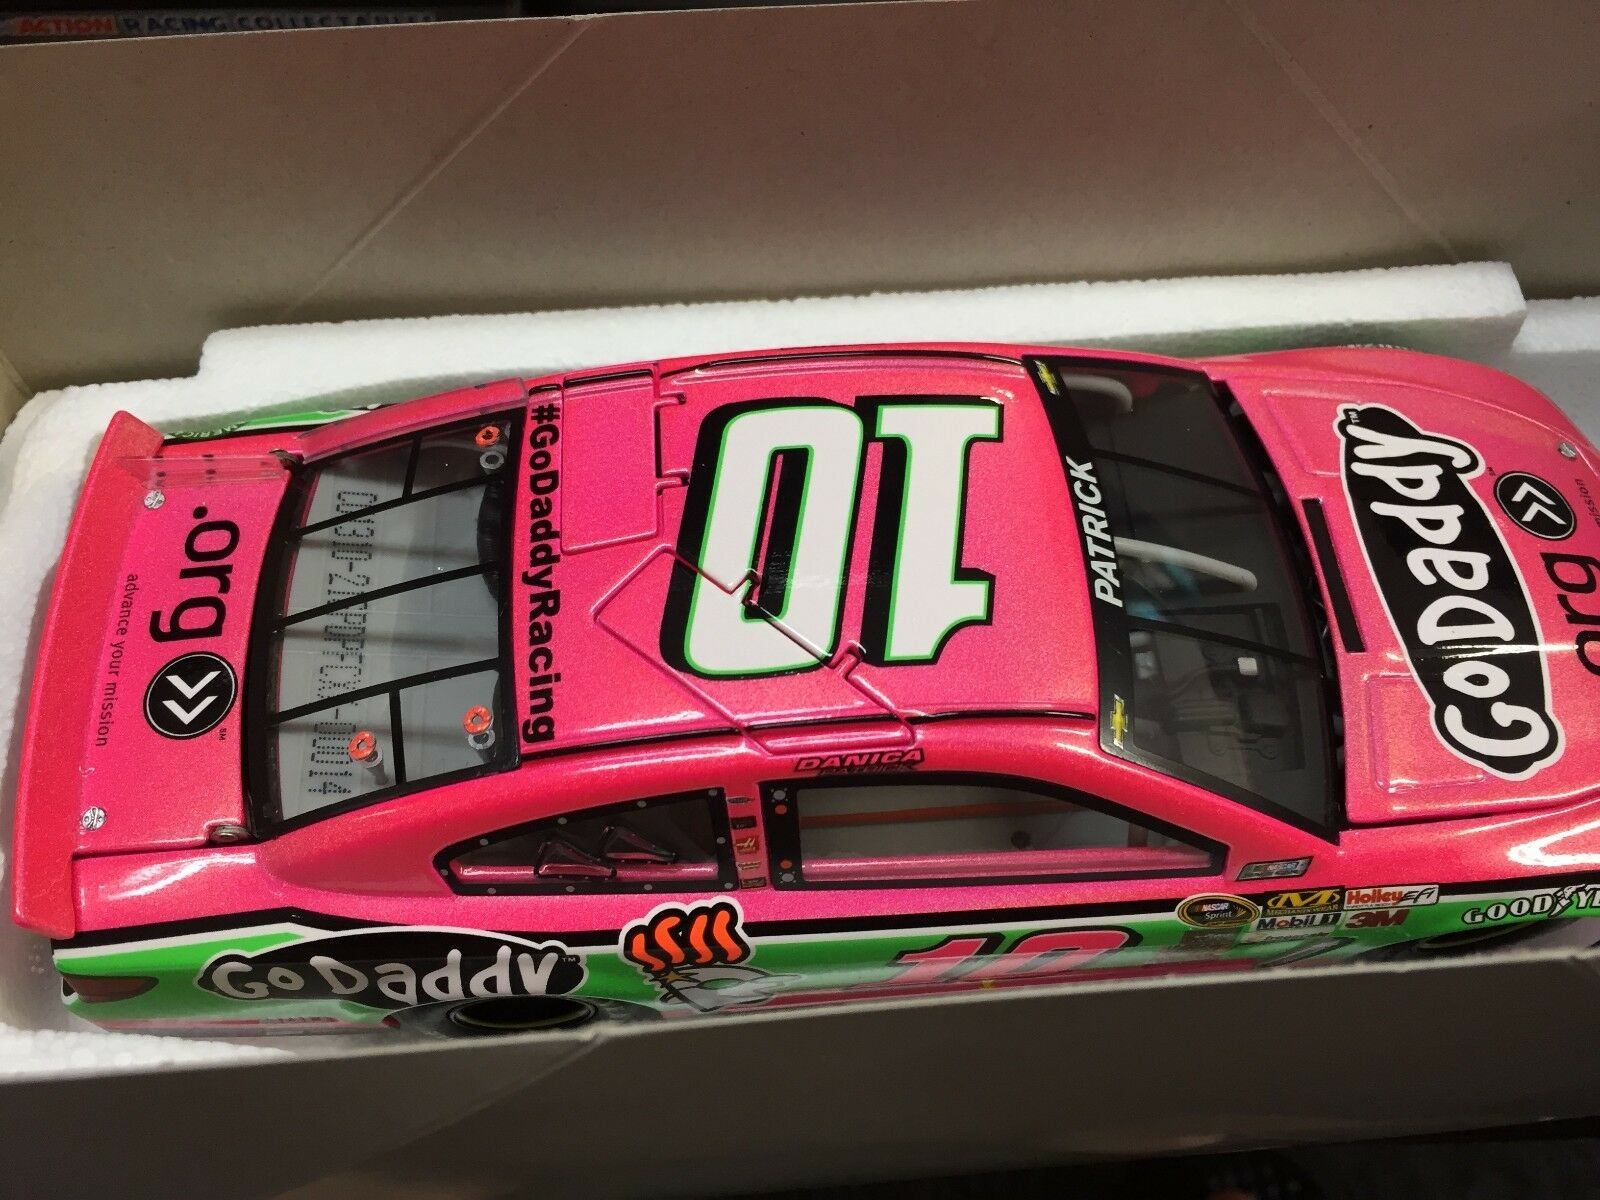 1 24 ACTION Danica Patrick '13 SS  10 GoDaddy  Pink 1 of 72  14 Flashcoat